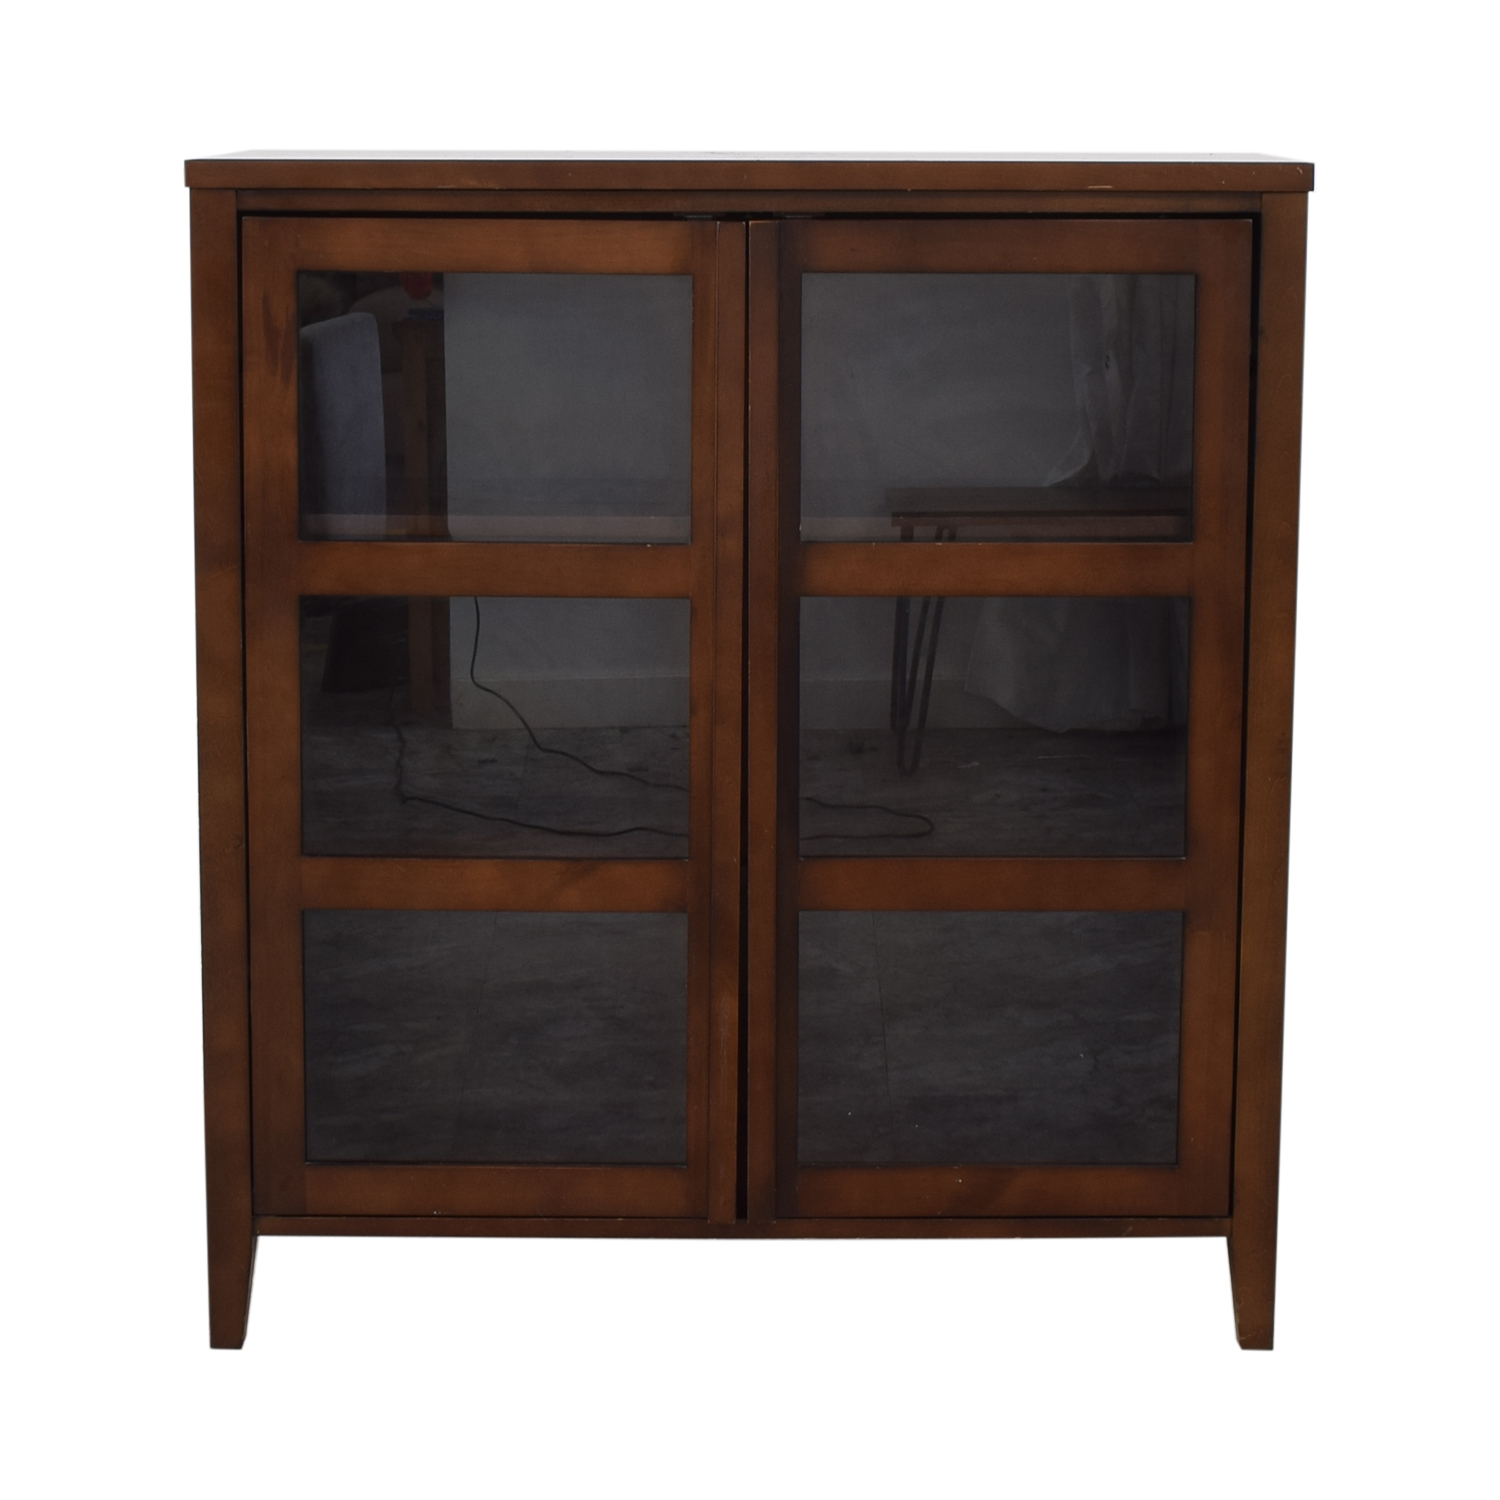 Crate & Barrel Crate & Barrel Media Cabinet second hand